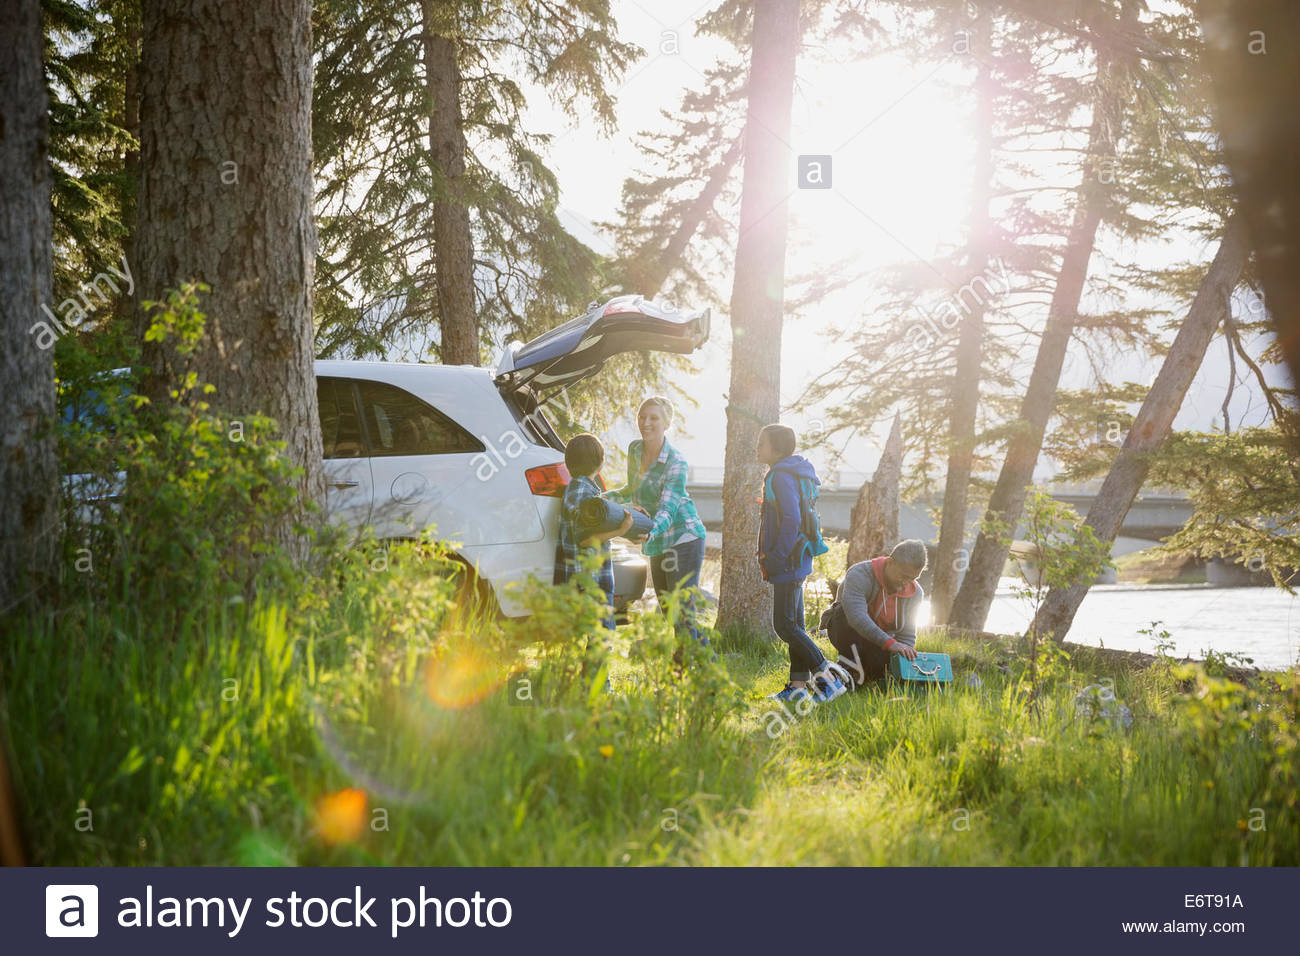 Family at campsite Photo Stock